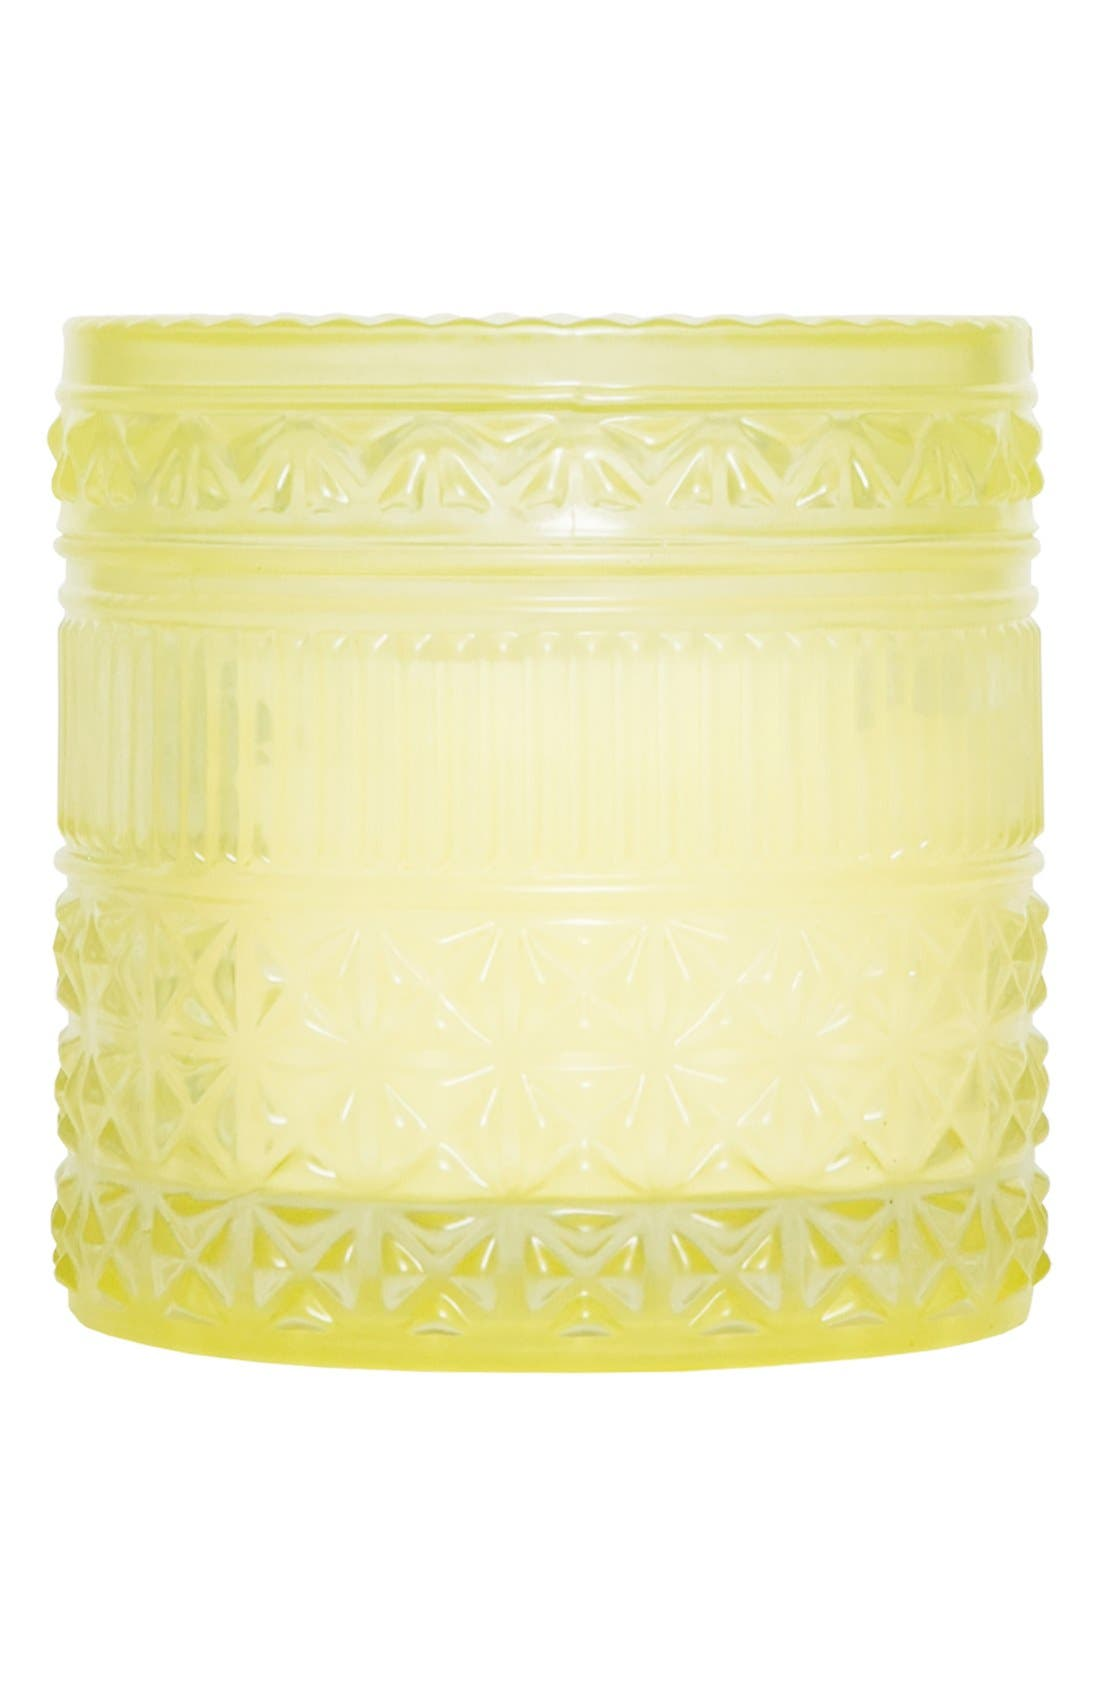 'Muse Collection' Candle,                             Main thumbnail 6, color,